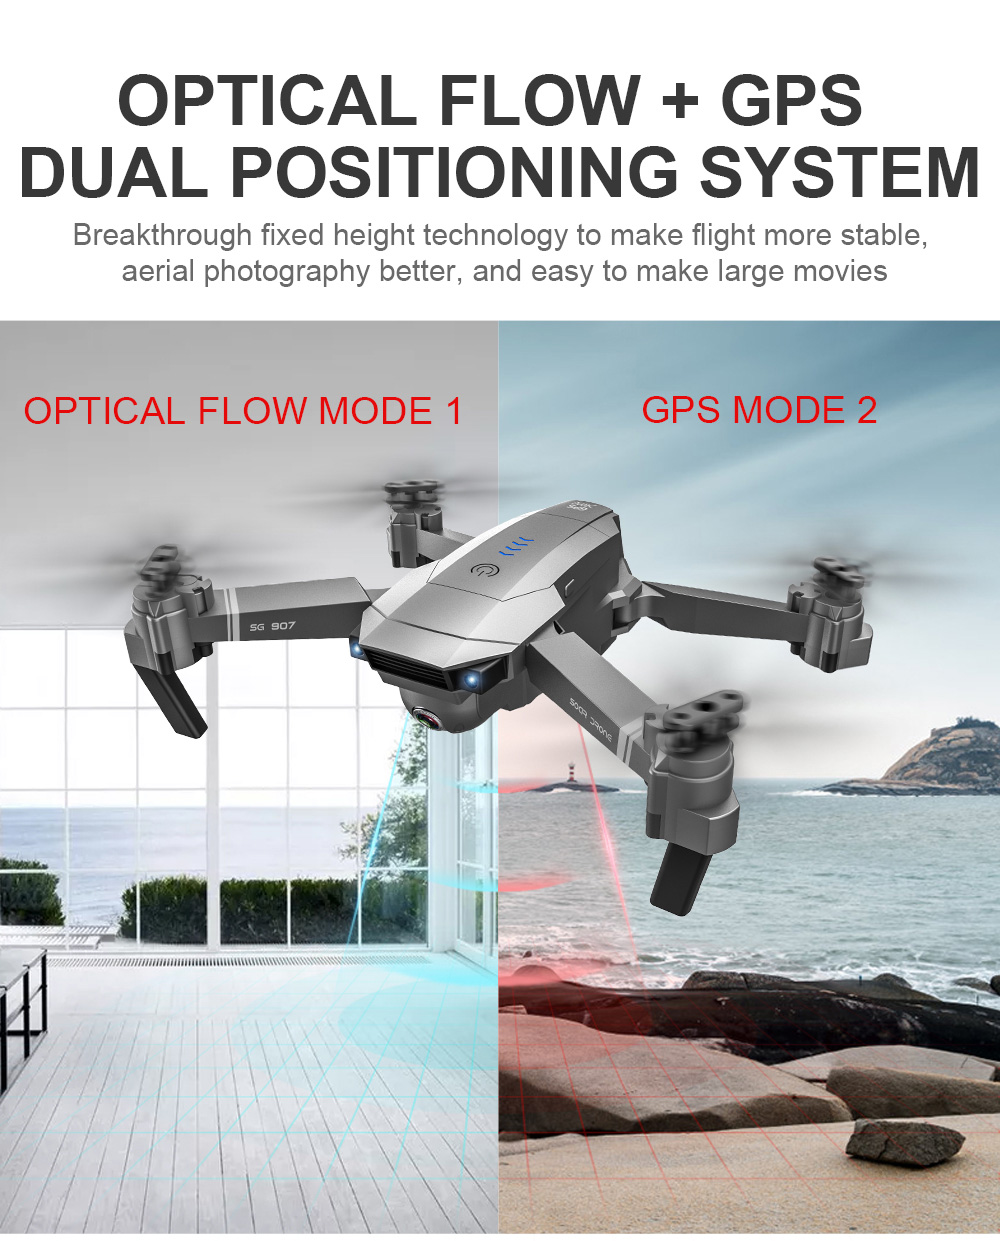 SG907 5G WiFi Folding Drone - Gray 4K,2 Batteries with Bag